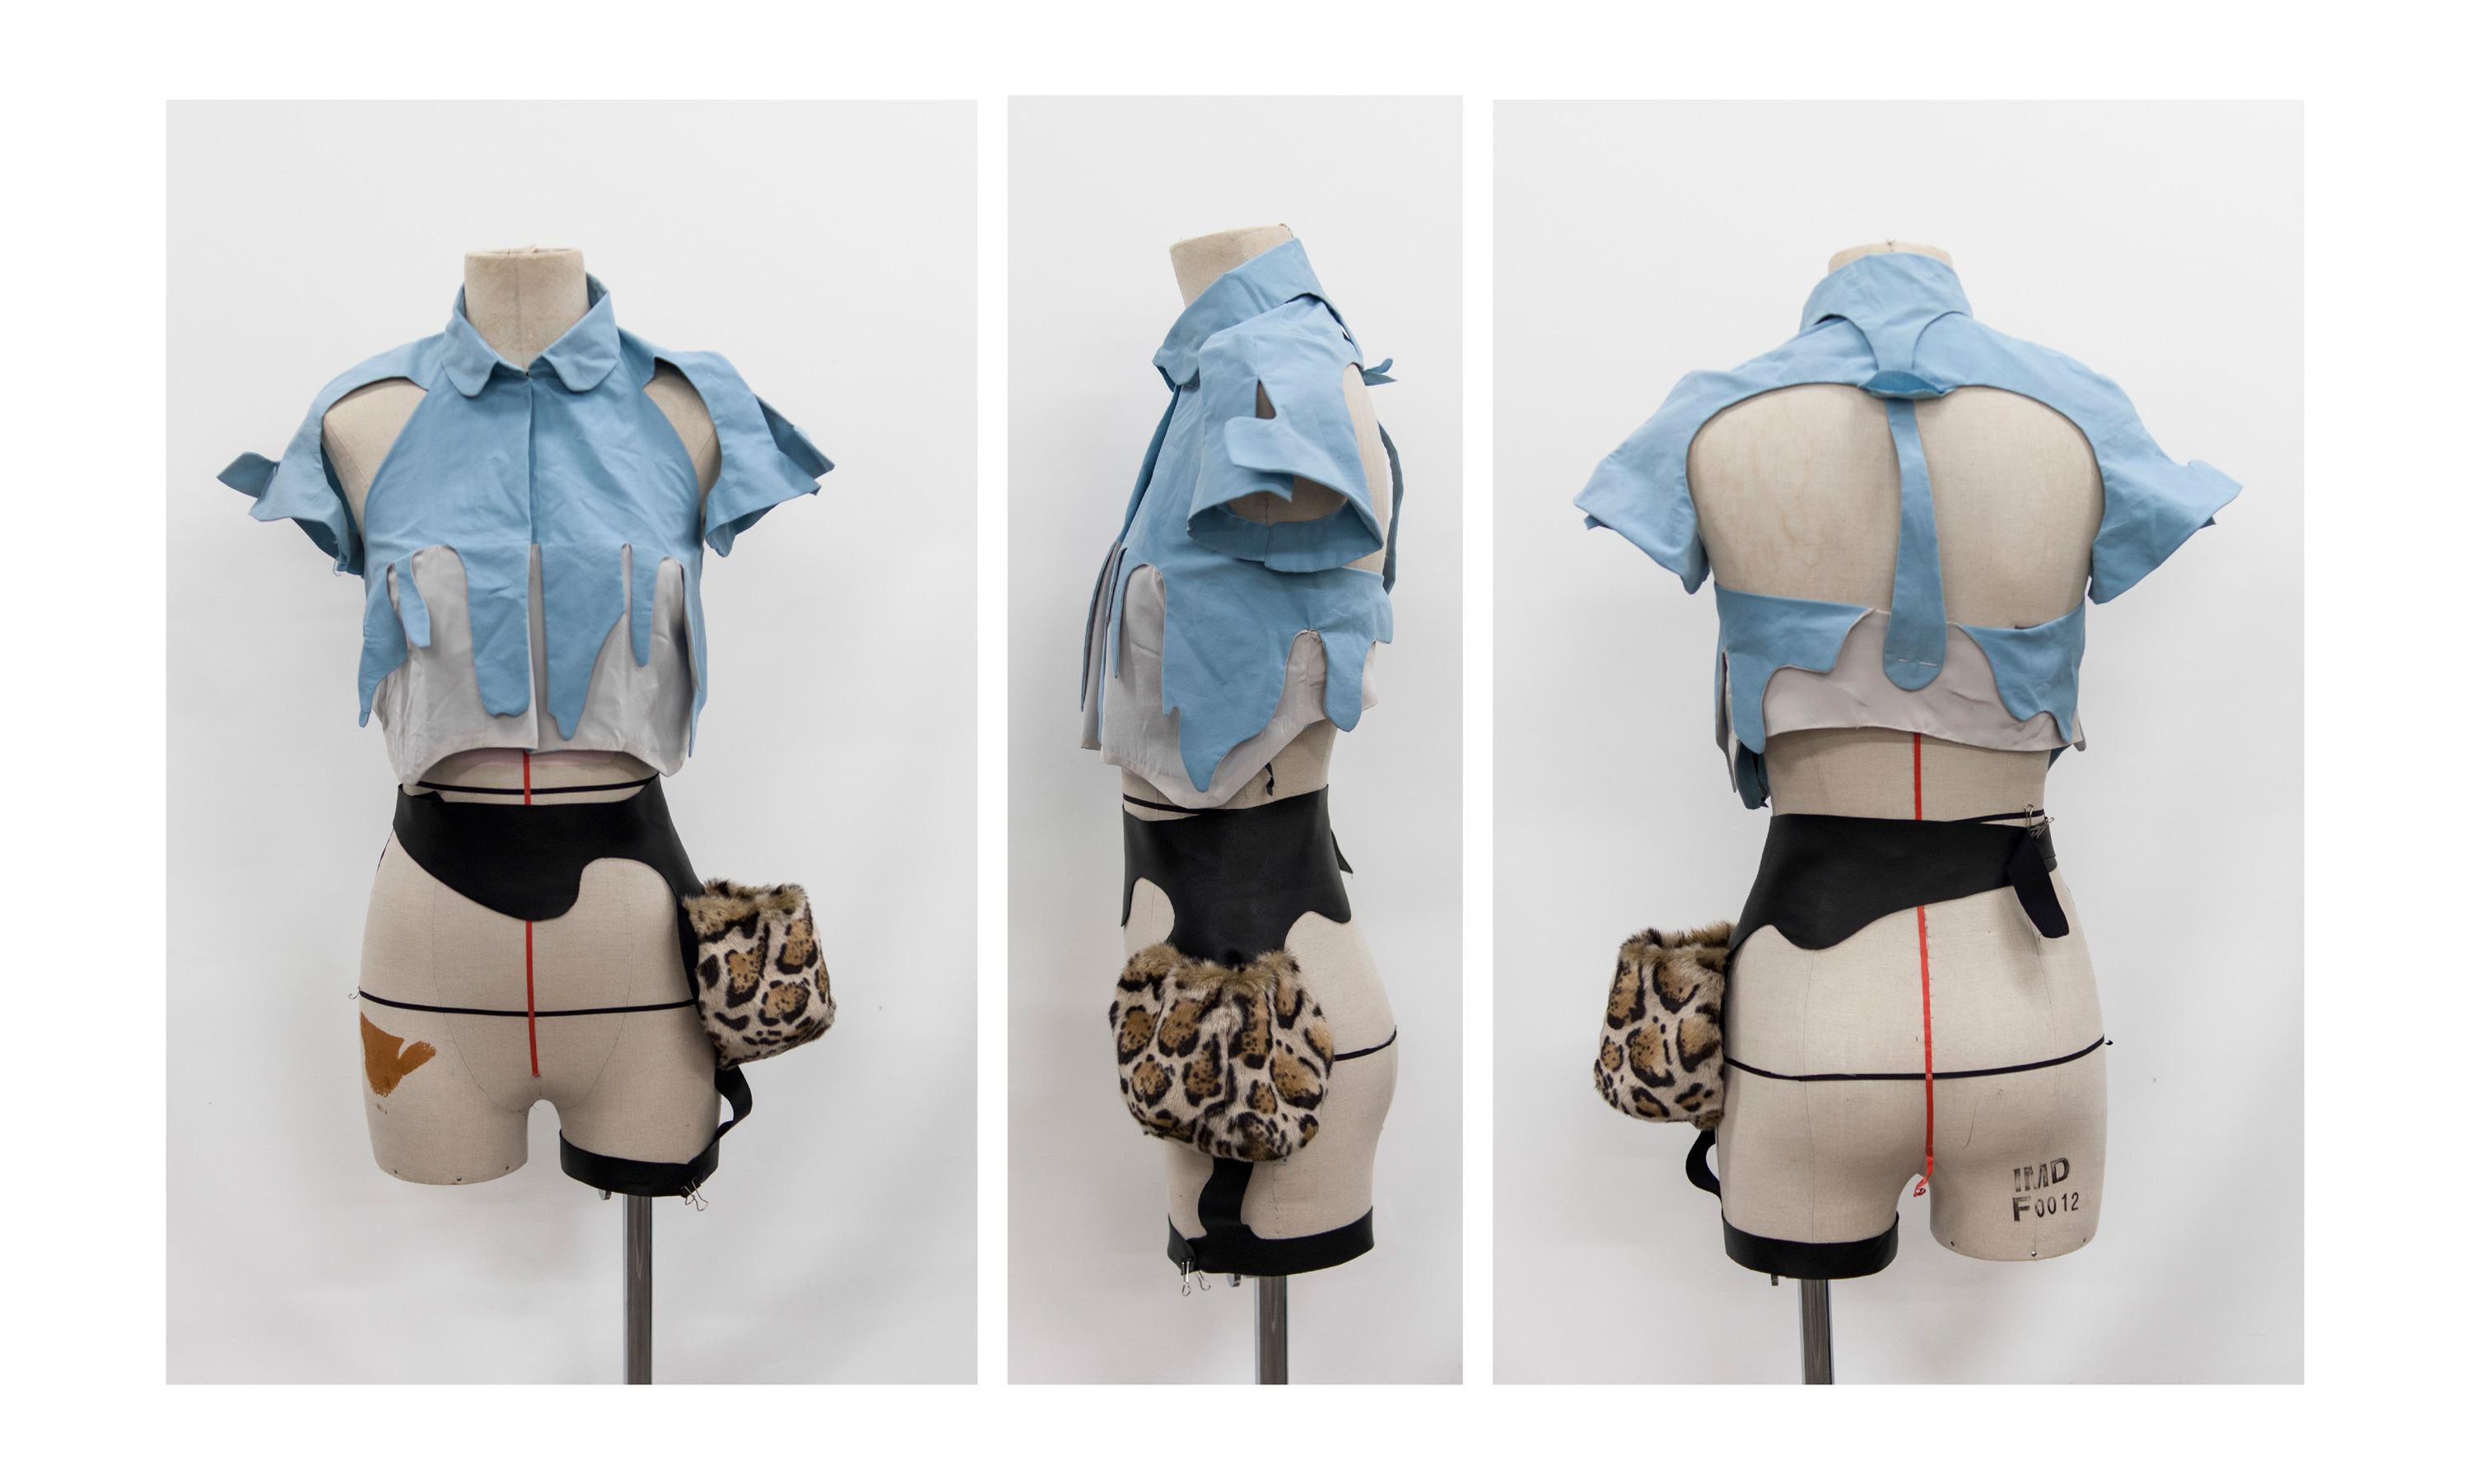 a mannequin wearing a leather and faux-fur hip bag with a leg strap, and the two-tone muslin for the surrealist blouse, the upper half of the blouse is blue, the lower half is grey, which pronounces the drip shape of the bust seam.